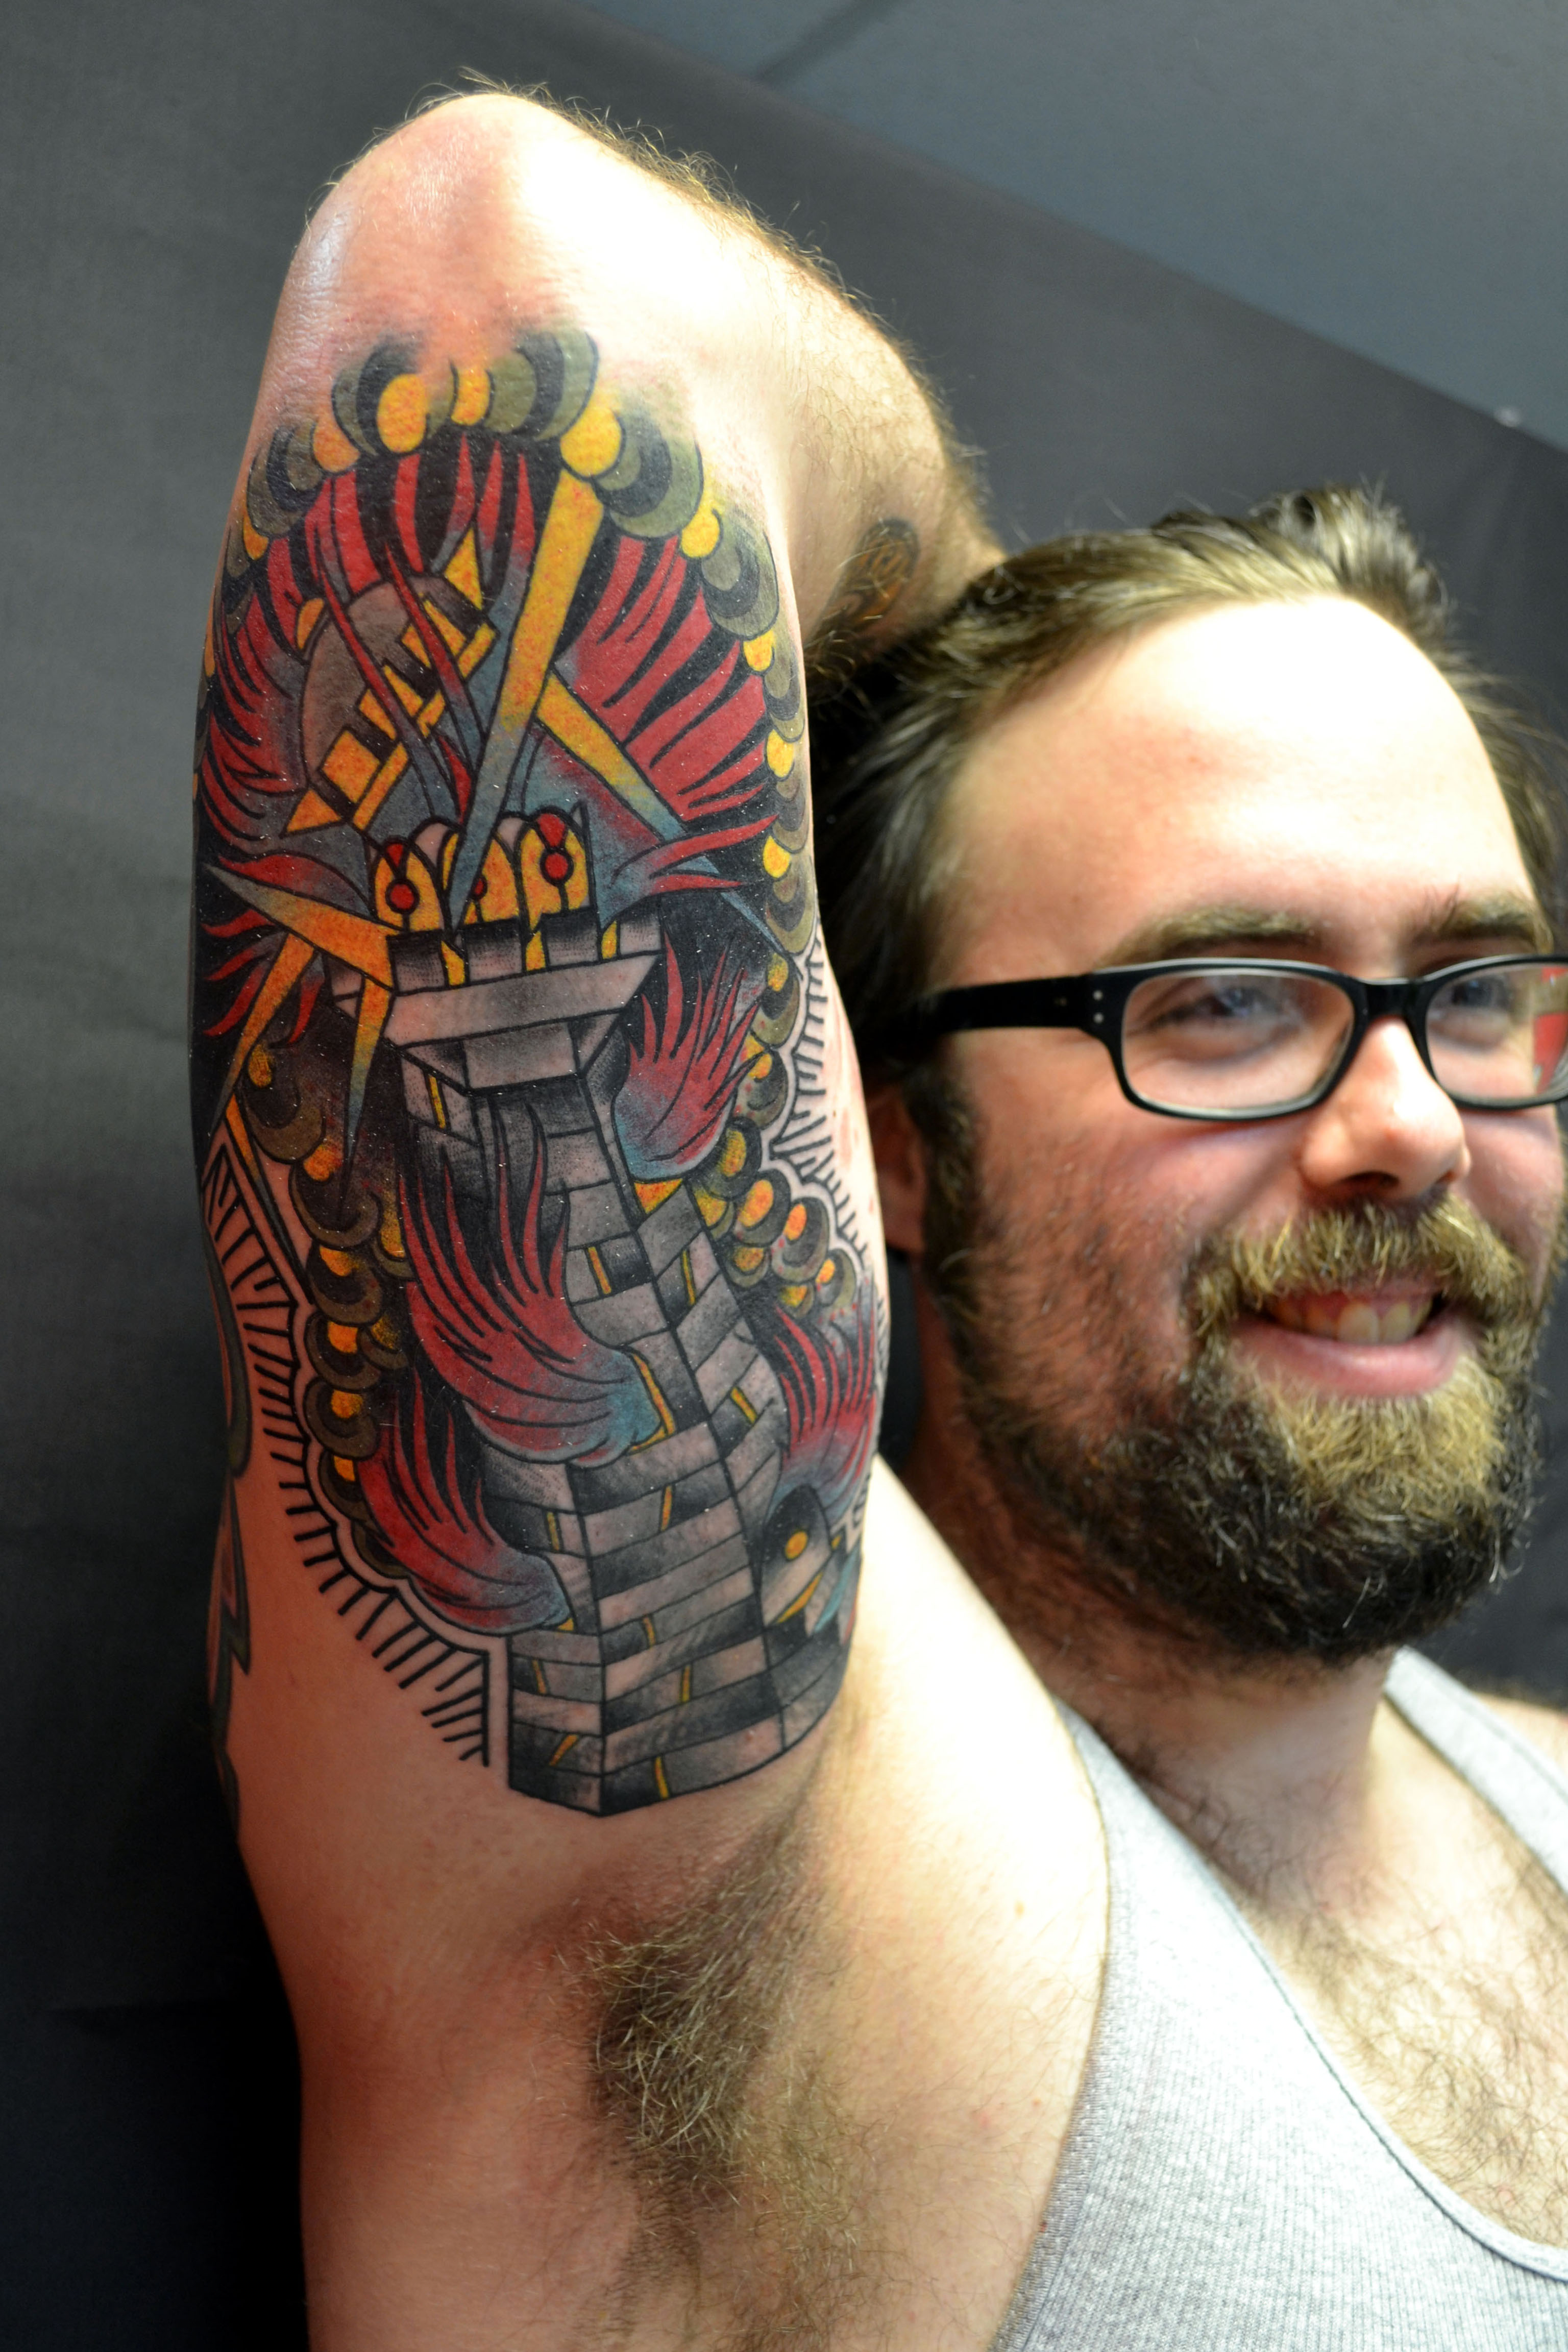 Lighthouse Tattoo | RAYMOND WALLACE TATTOOING: flawlesswallace.com/tattoos/tower-tattoo-done-2